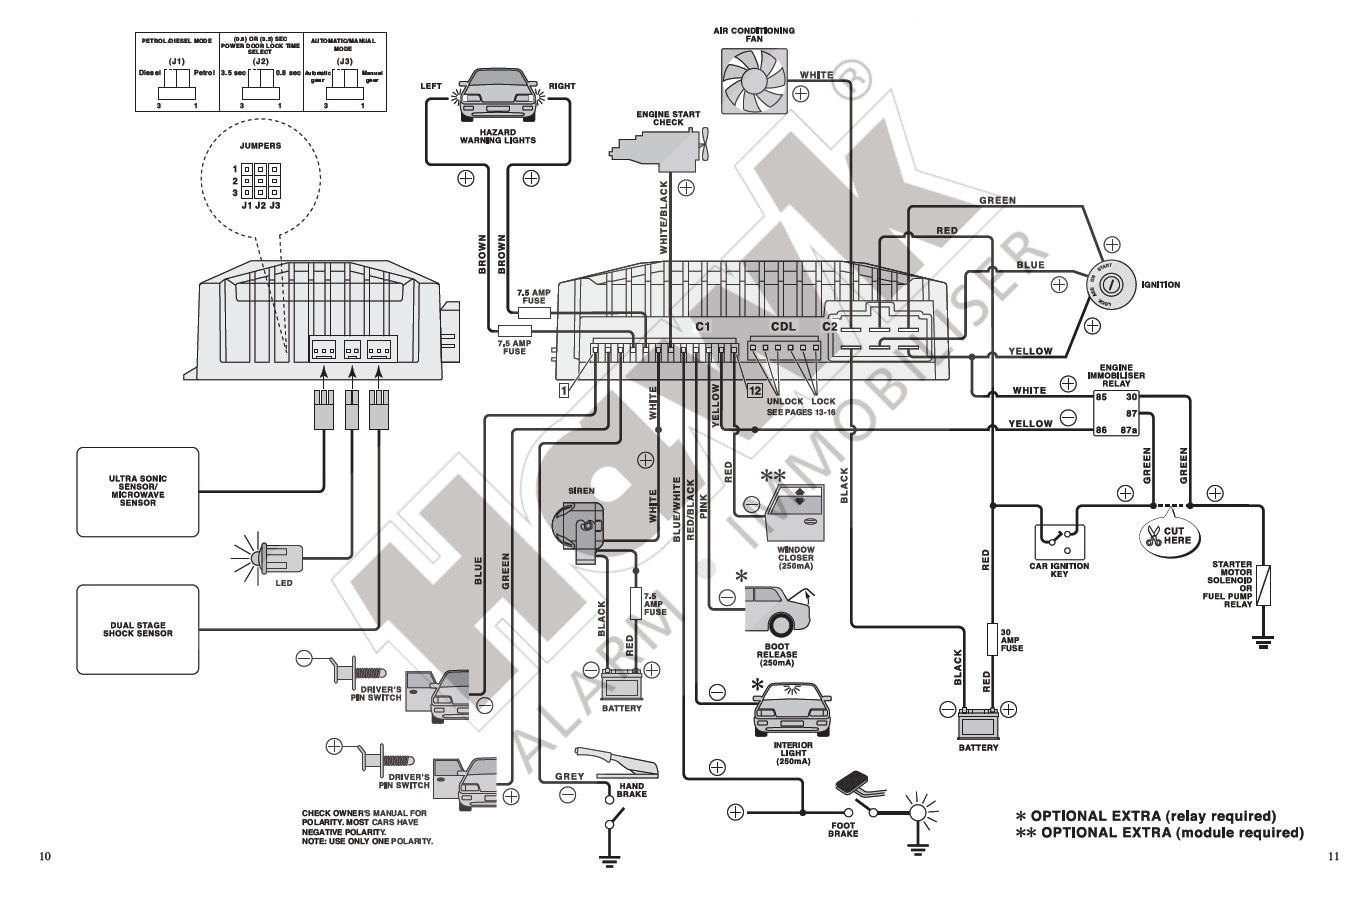 SA_9417] Wiring Diagram Ford Galaxy 2002 Download DiagramSyny Ropye Omit Ospor Greas Benkeme Mohammedshrine Librar Wiring 101